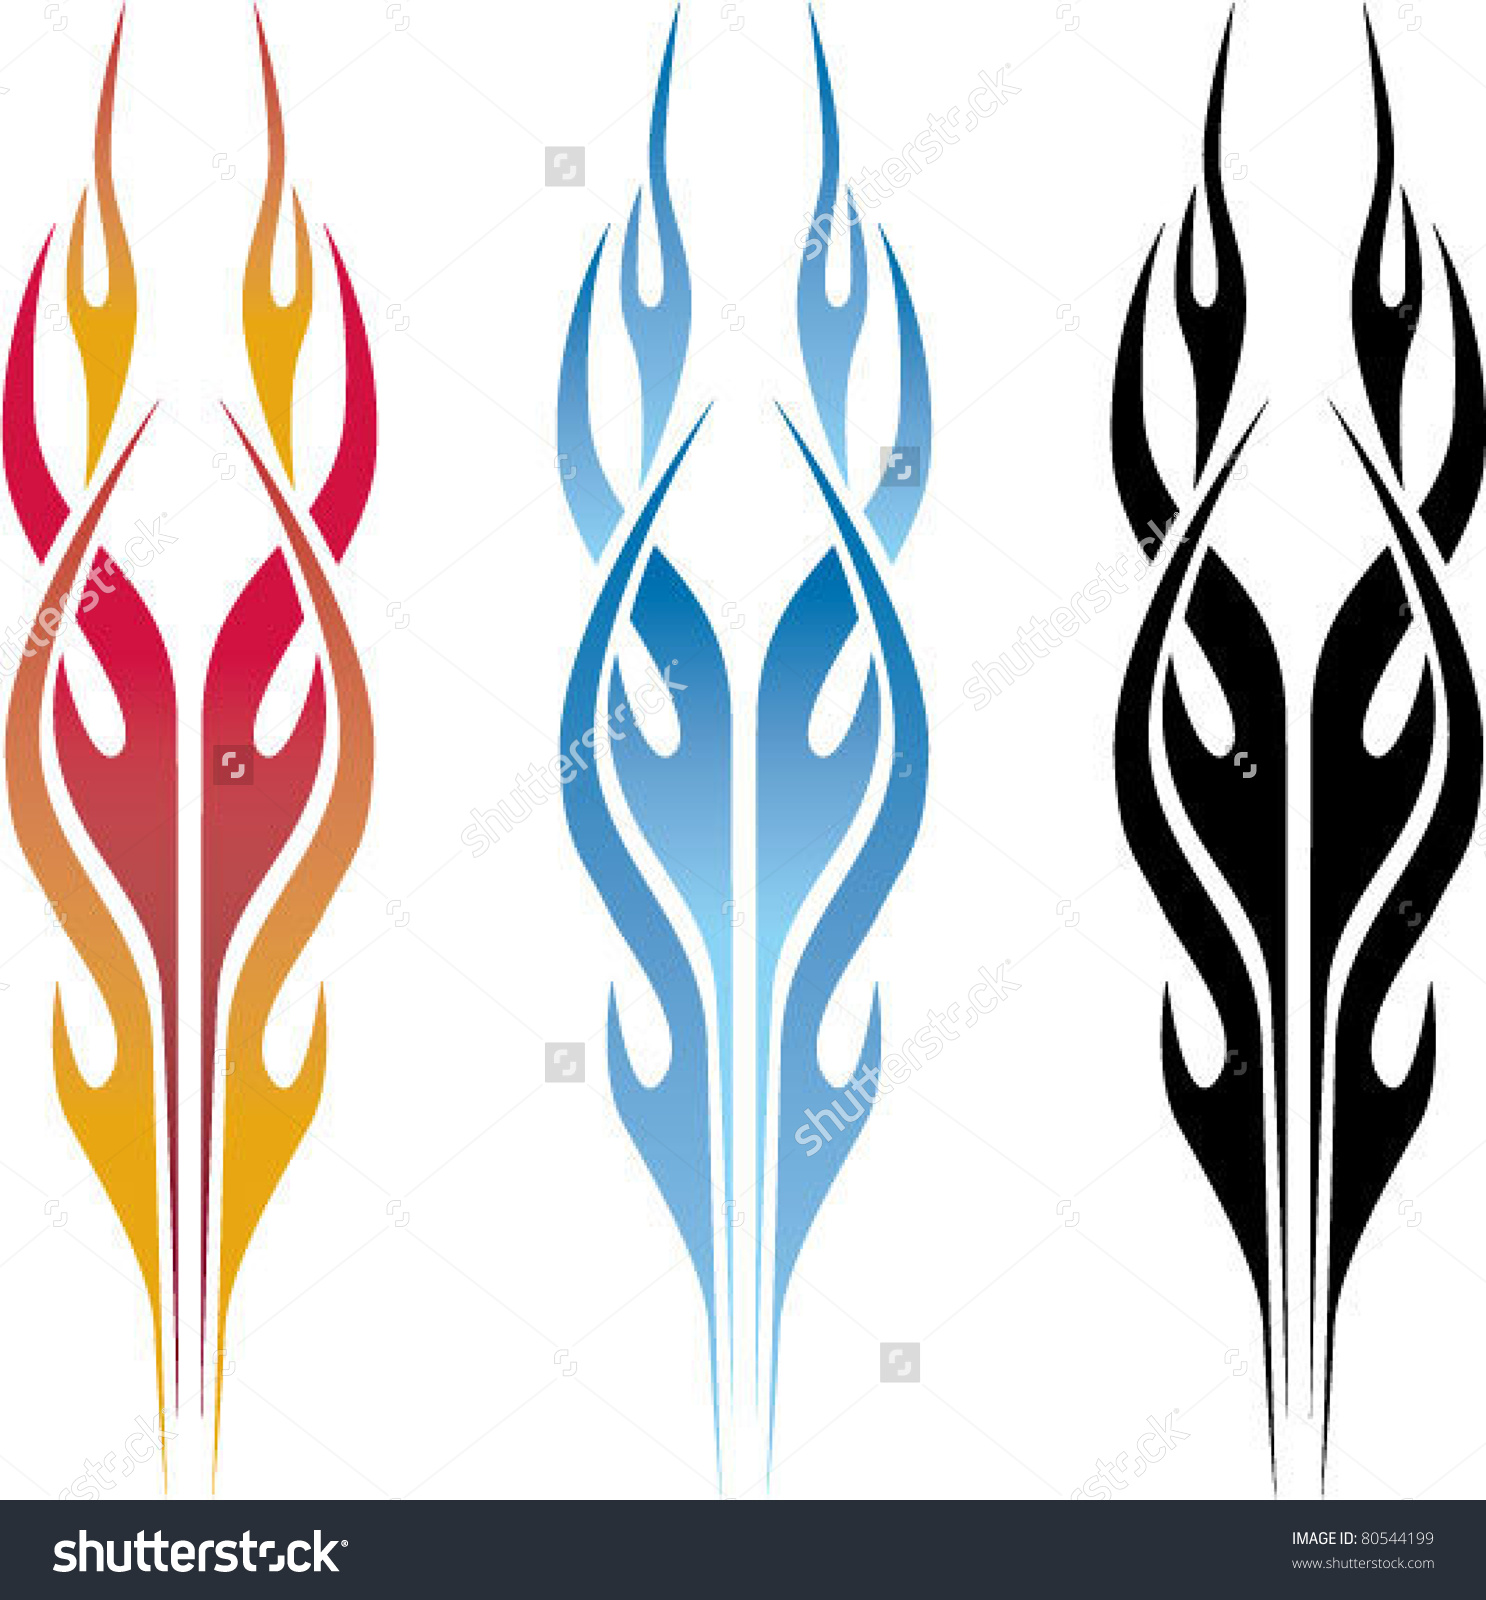 Flames clipart tribal Flames j Search letter clipart